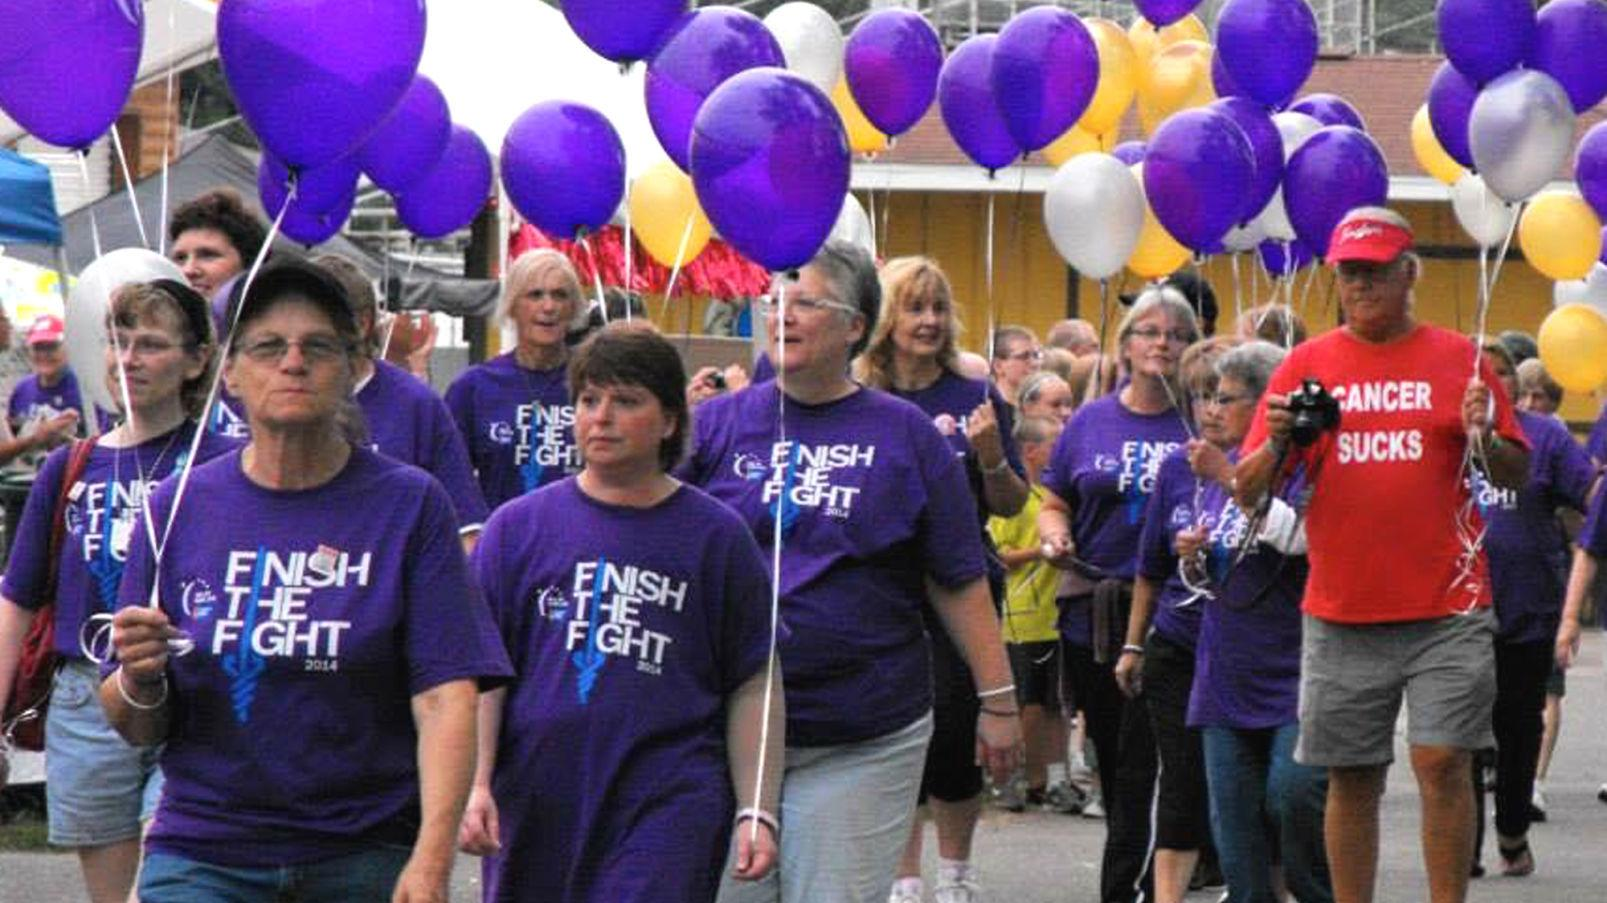 Chippewa family finds strength in diagnosis, raises funds for a cure   Local   chippewa.com